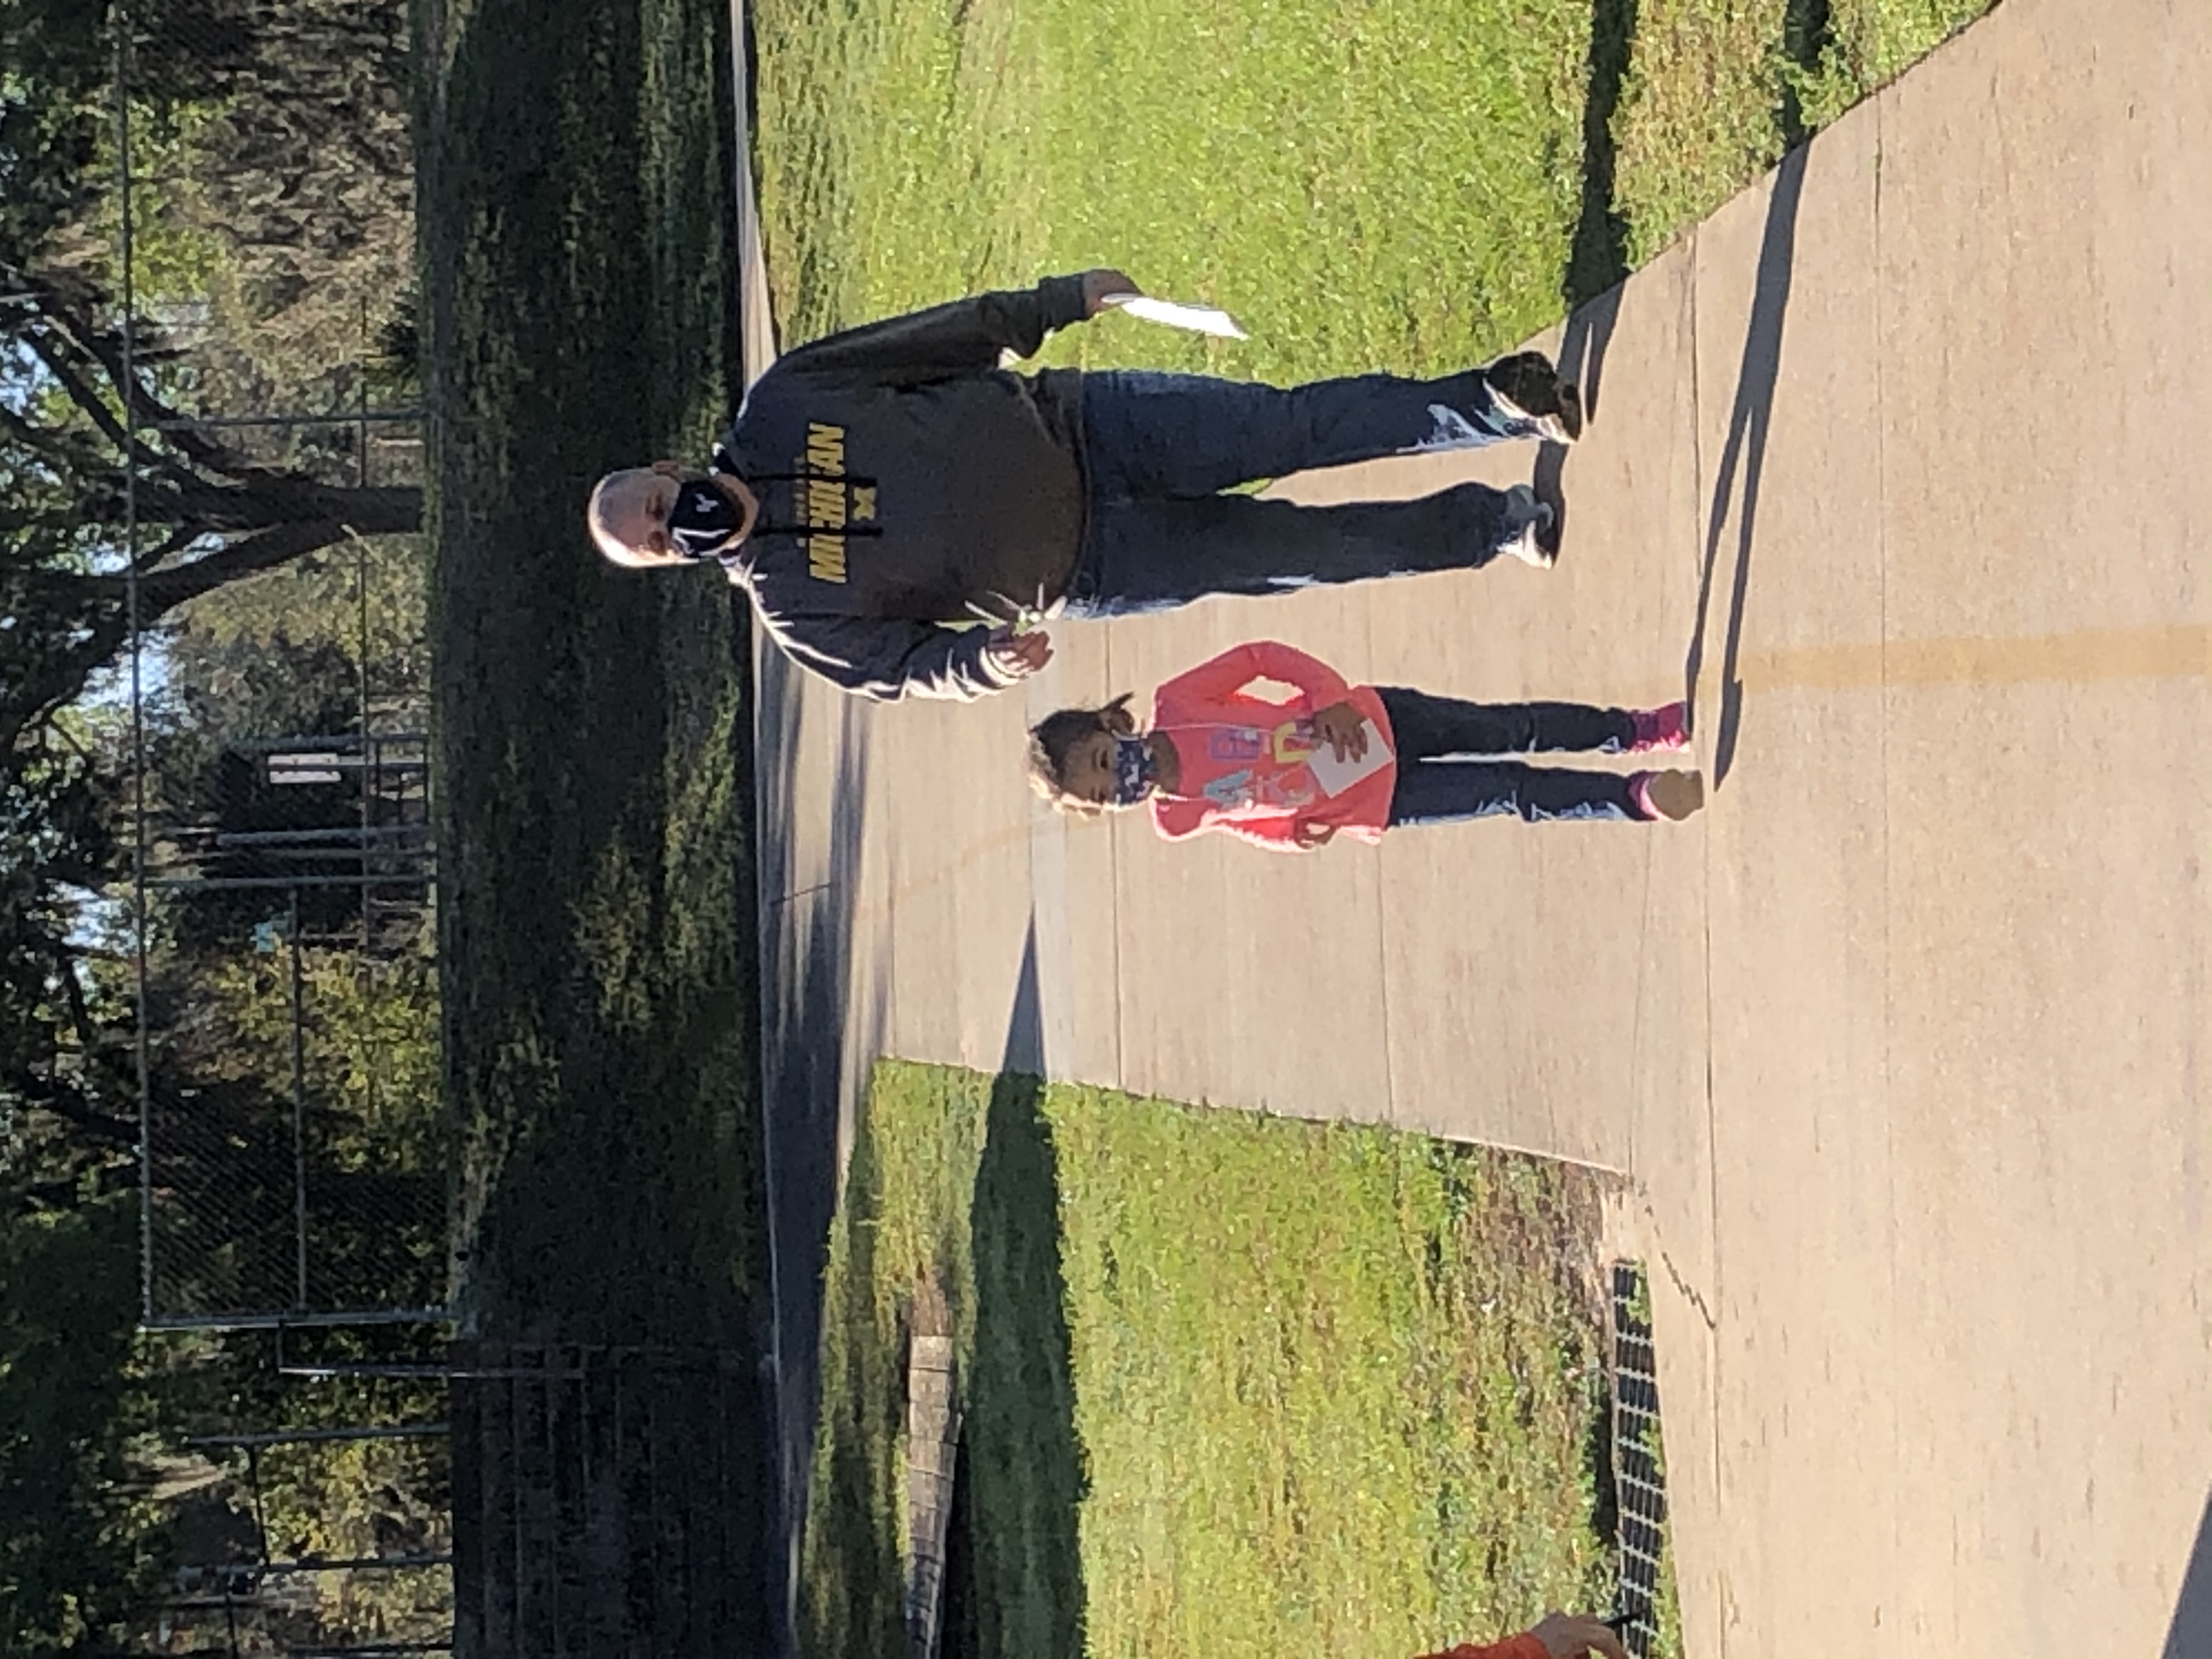 Mr. Barker and his daughter walking laps together at the Walk-a-Thon